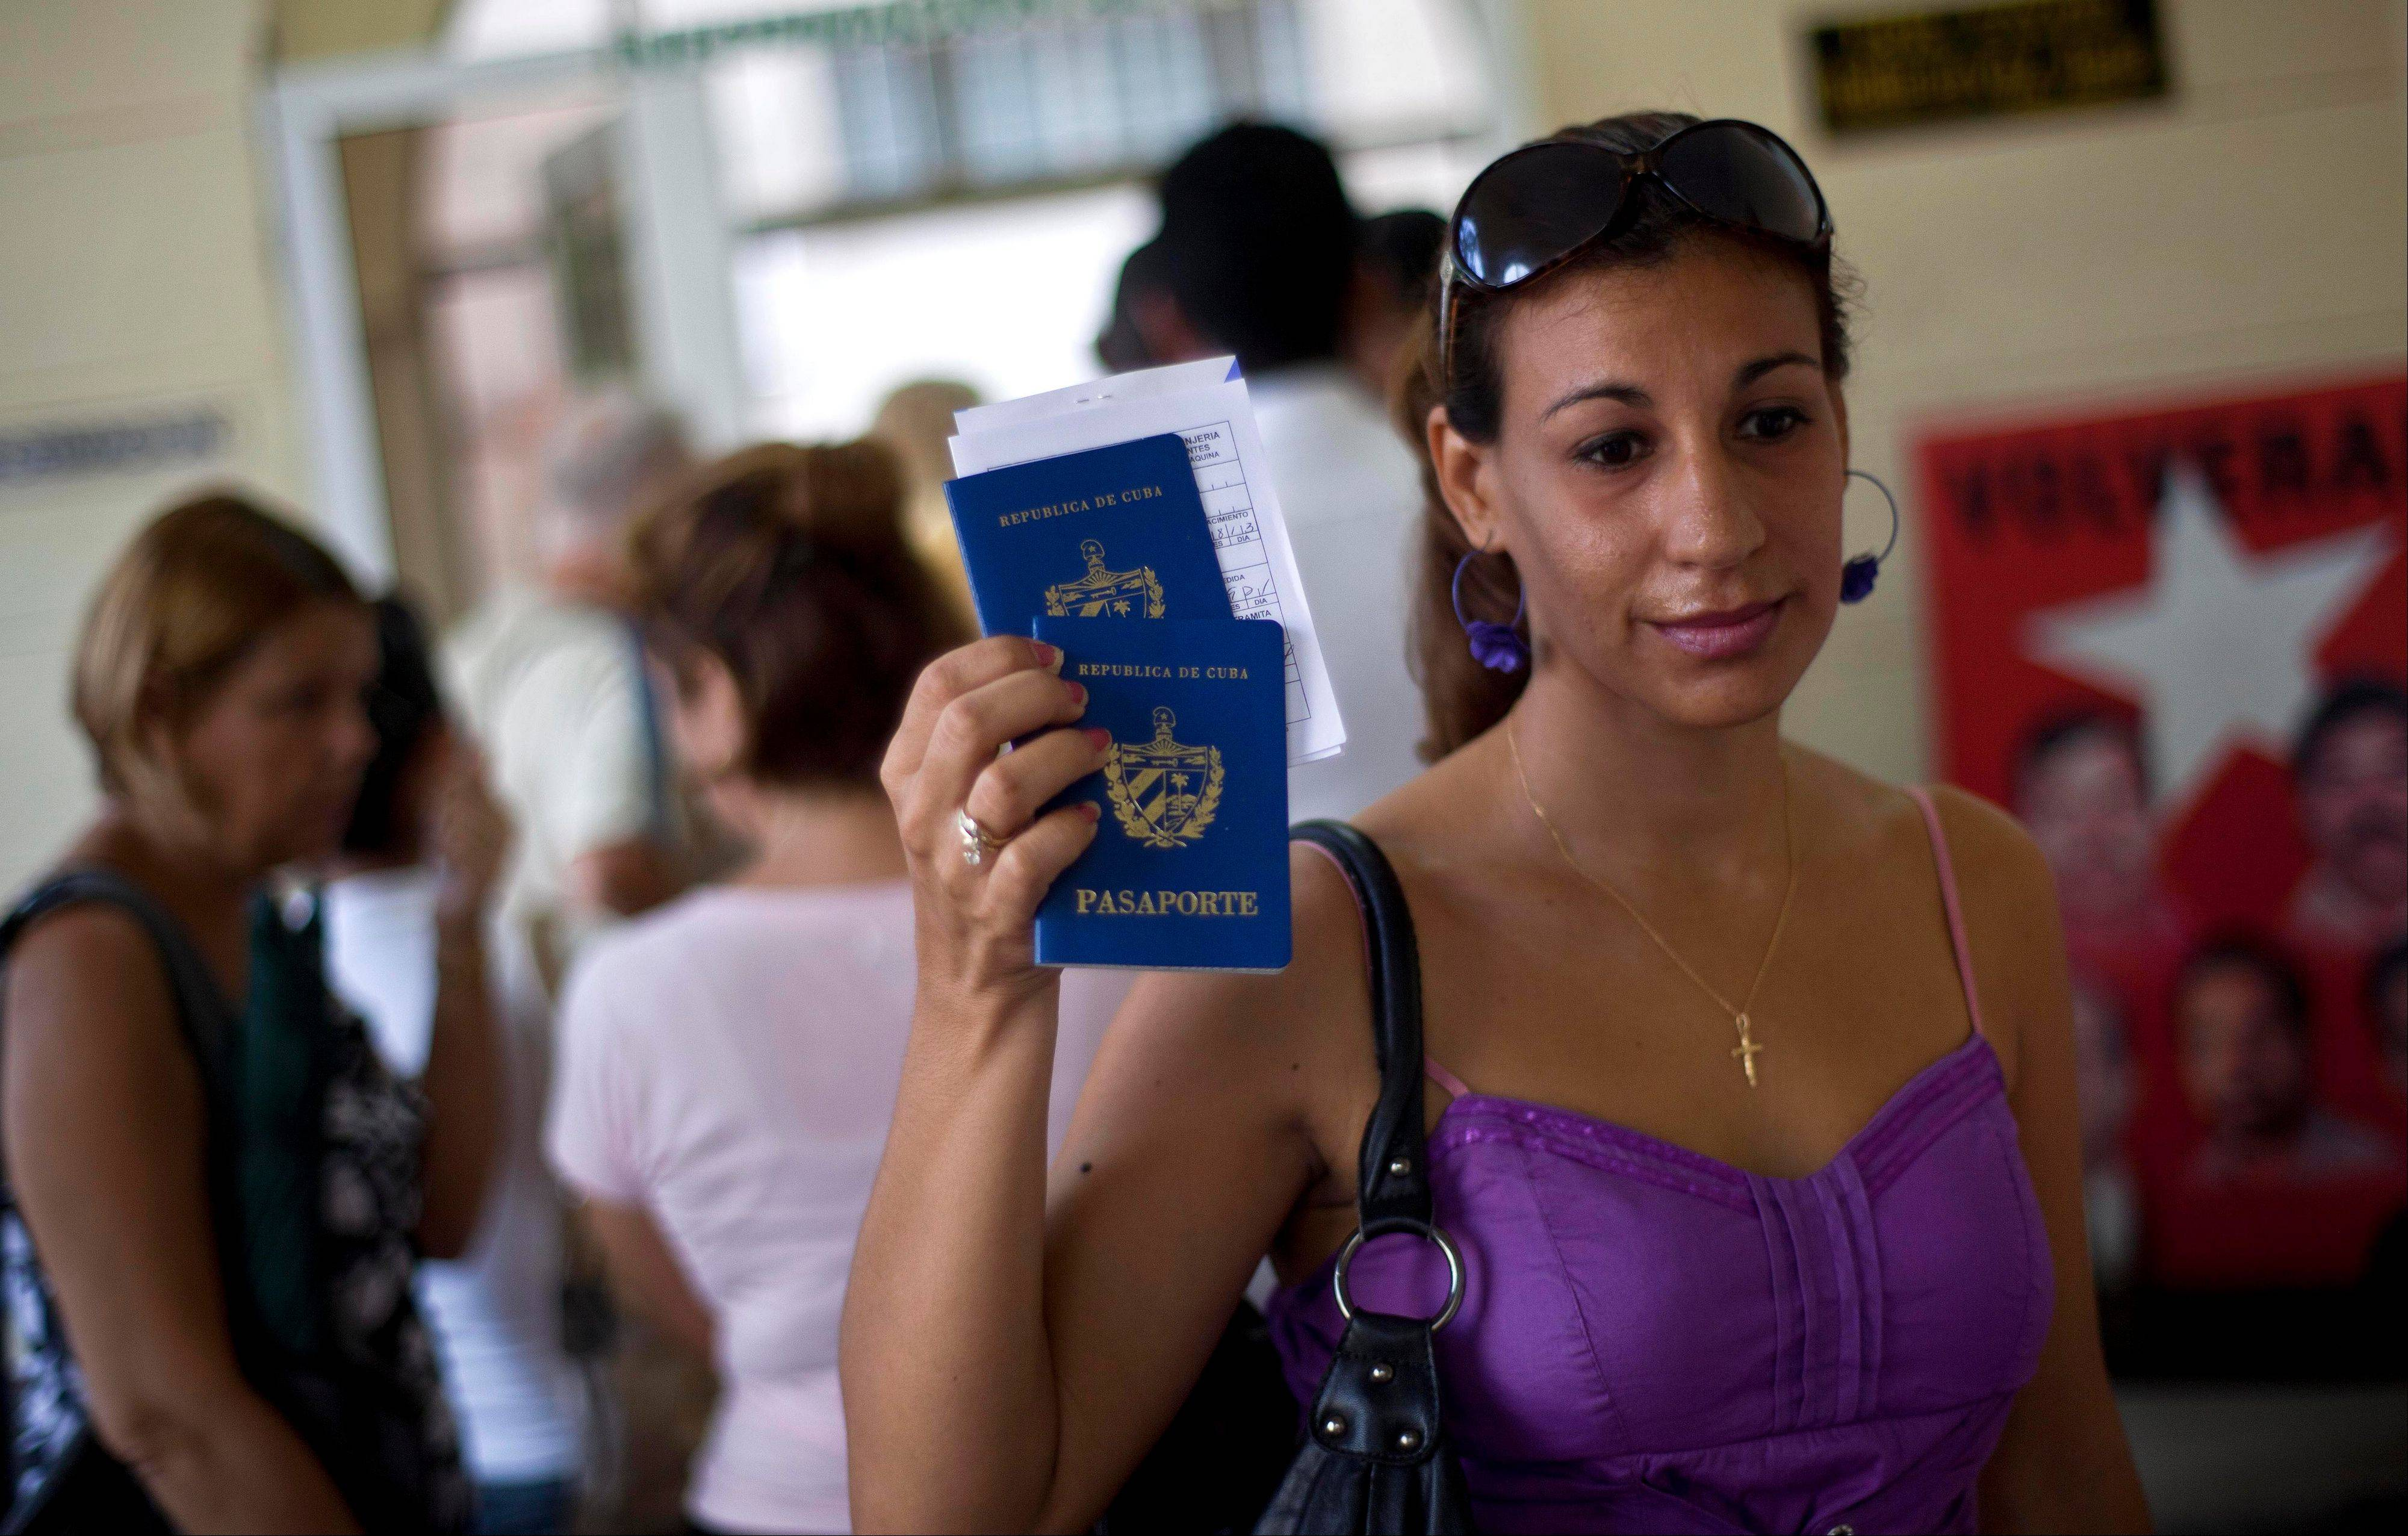 A woman shows her passport and that of her son to reporters as she leaves an immigration office in Havana on Tuesday. The Cuban government announced Tuesday it will no longer require islanders to apply for an exit visa.